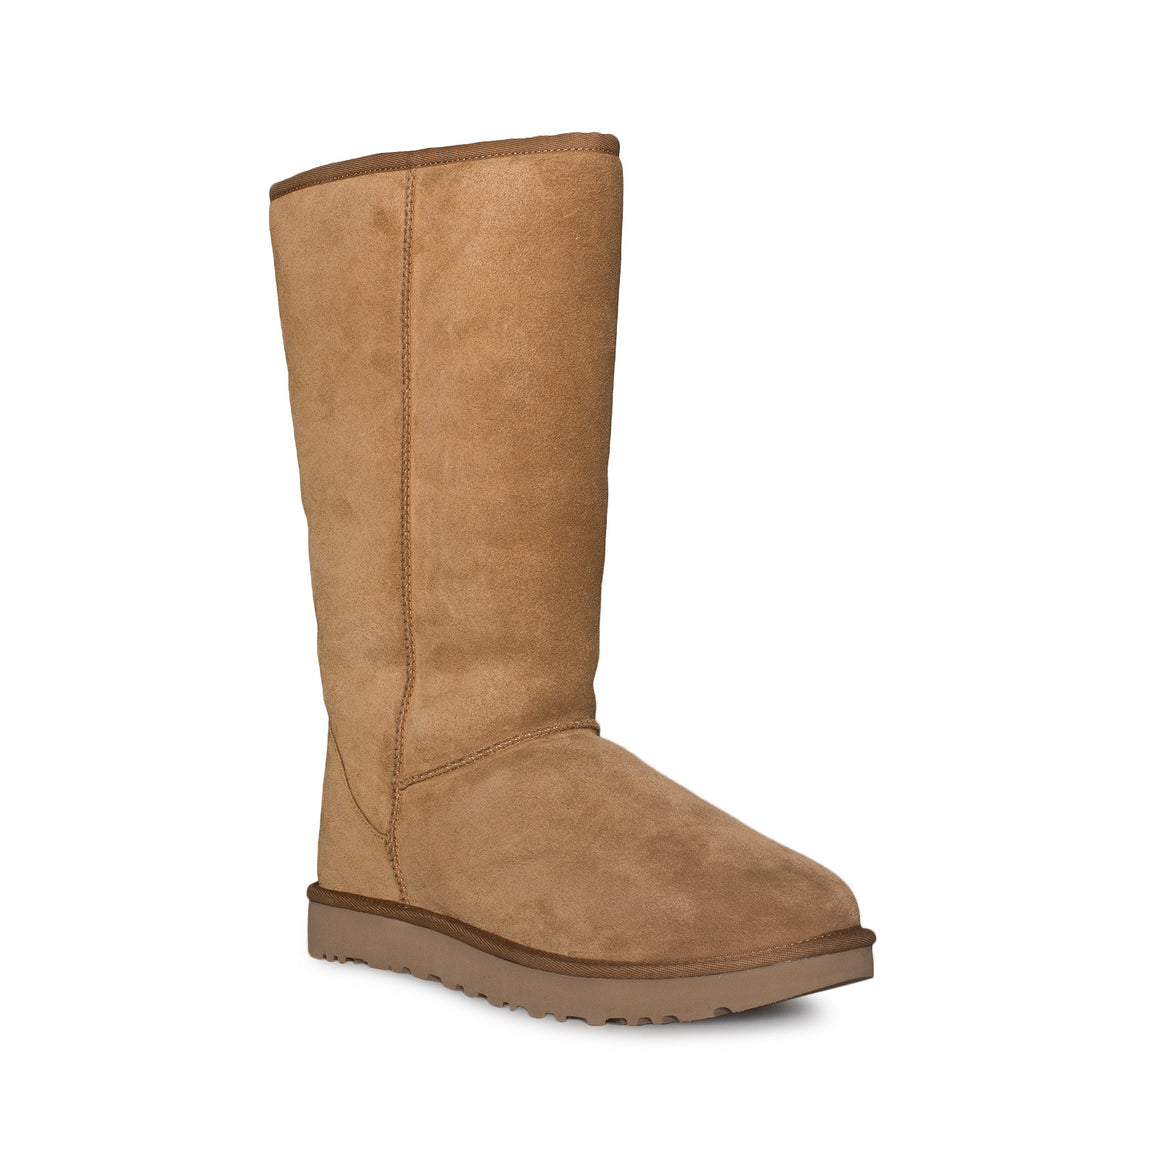 UGG Classic Tall II Animal Chestnut Boots - Women's